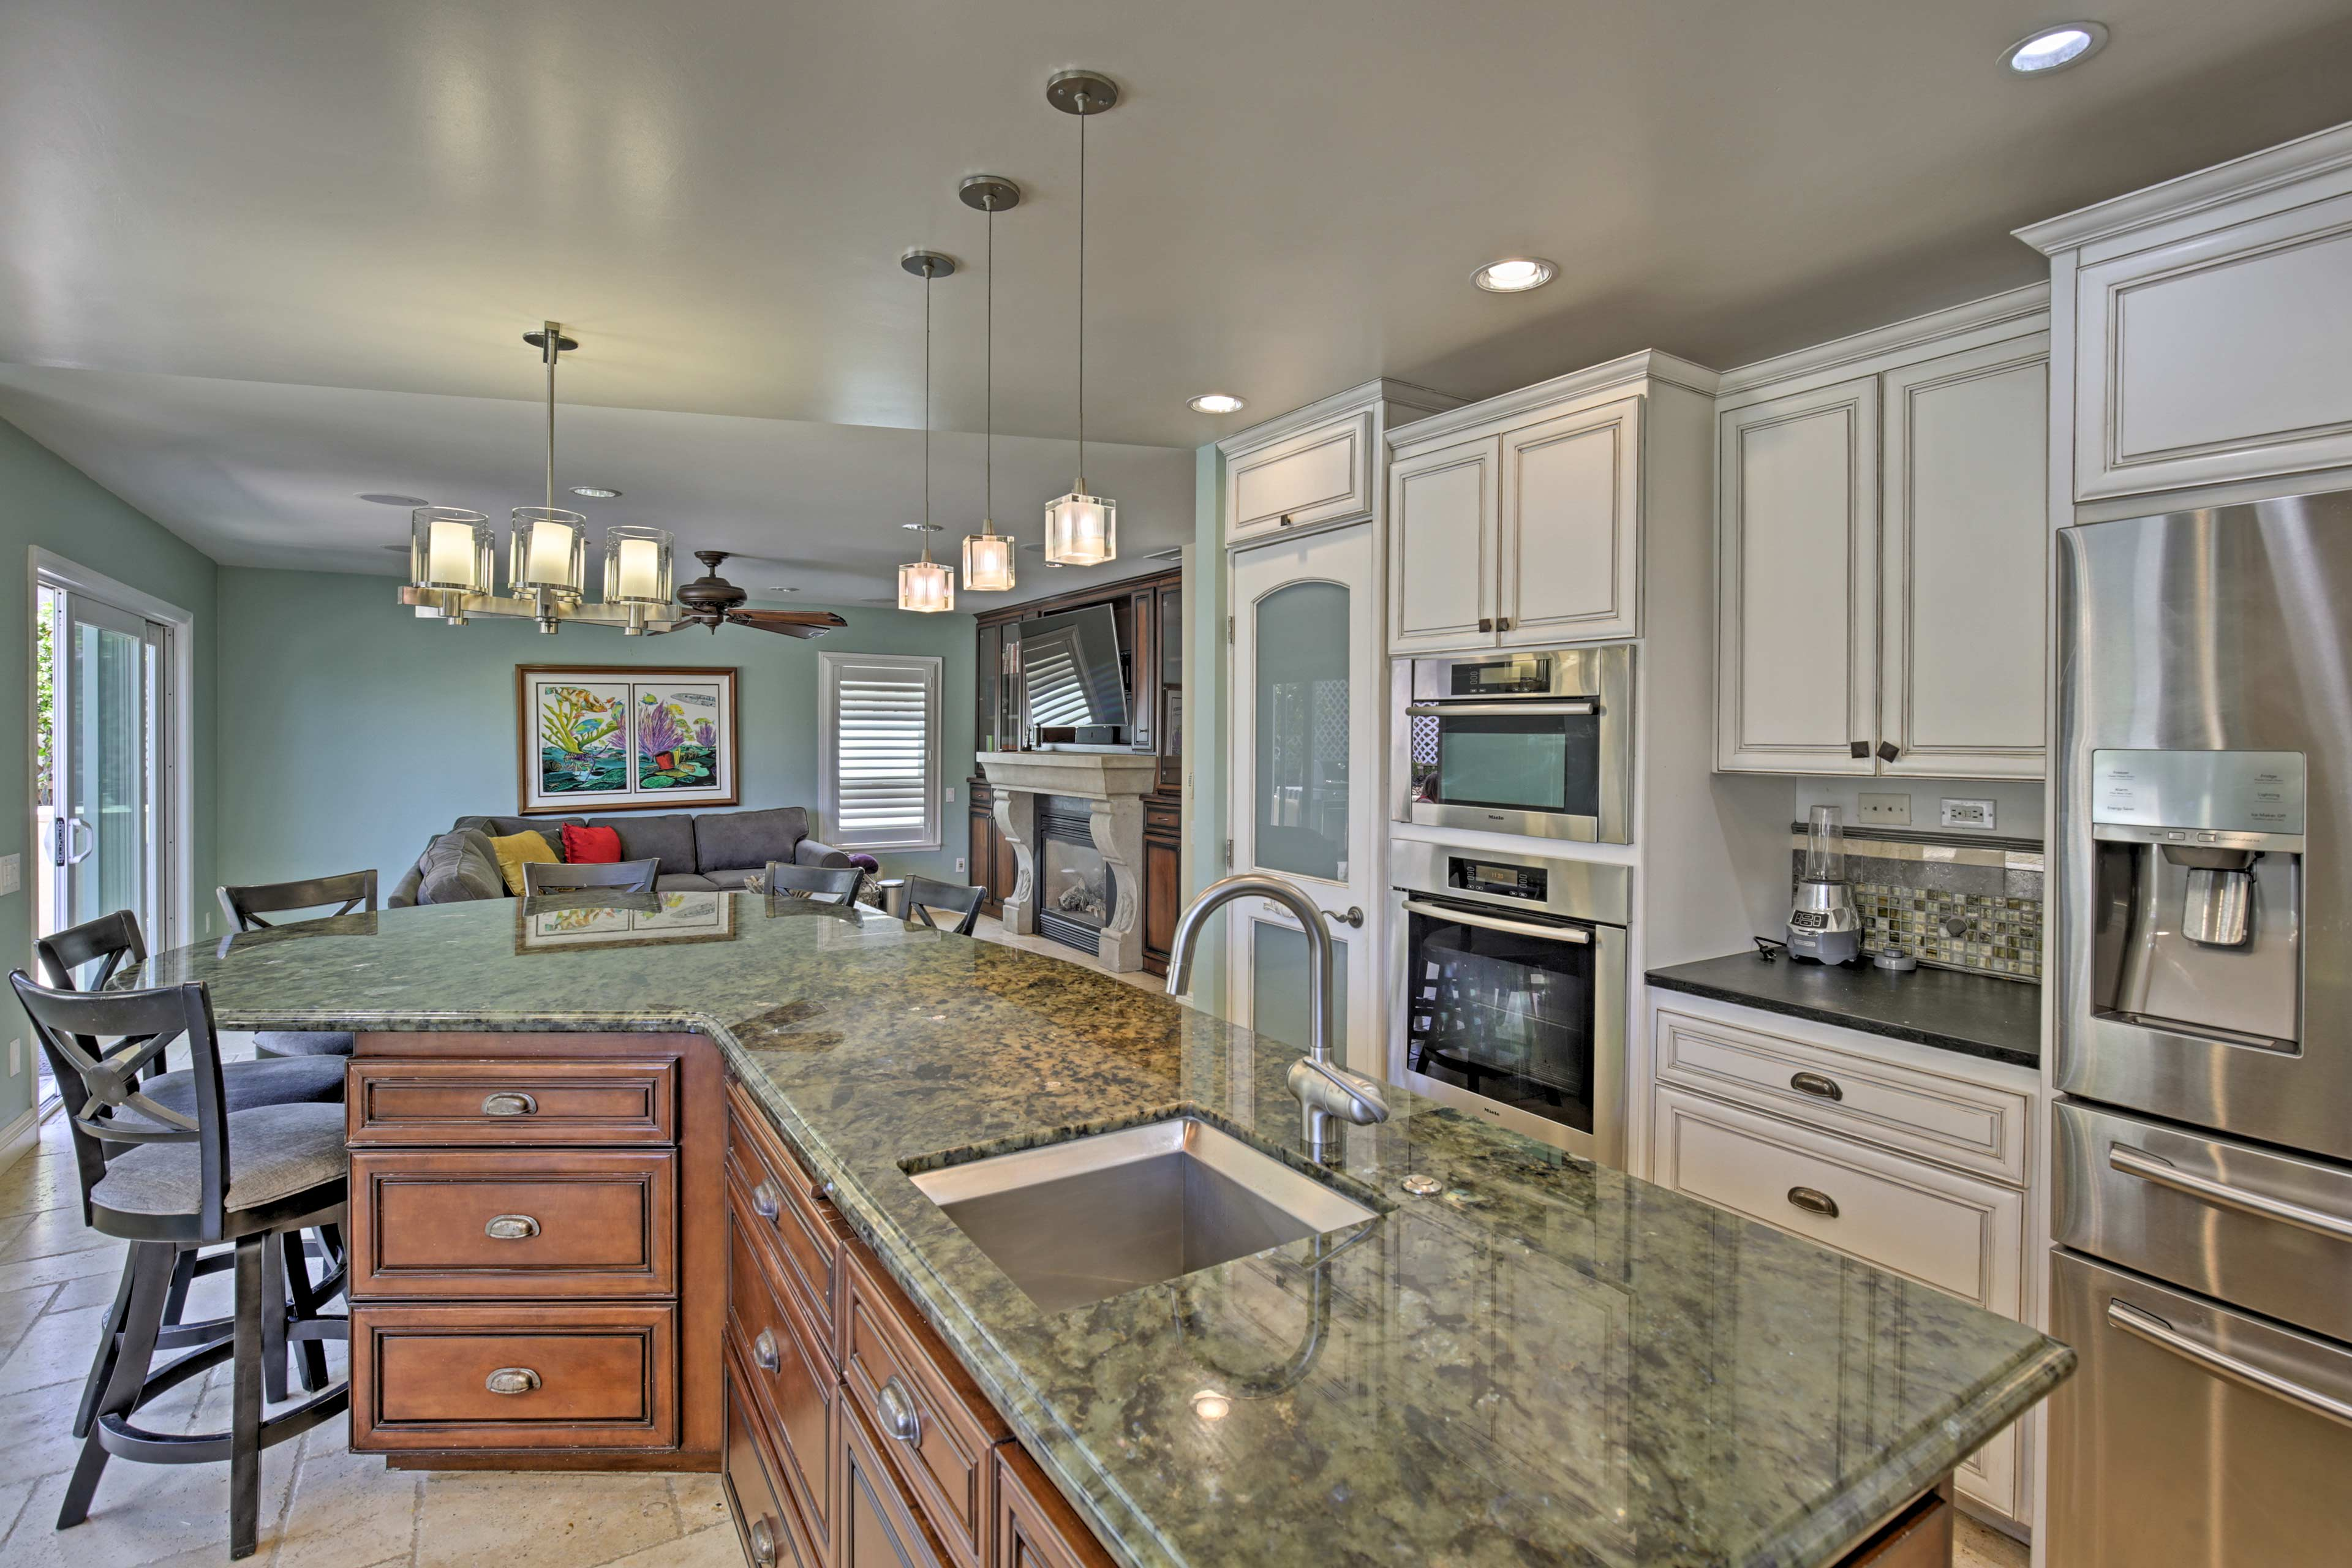 Modern appliances and ample cookware create a fully equipped cooking space.